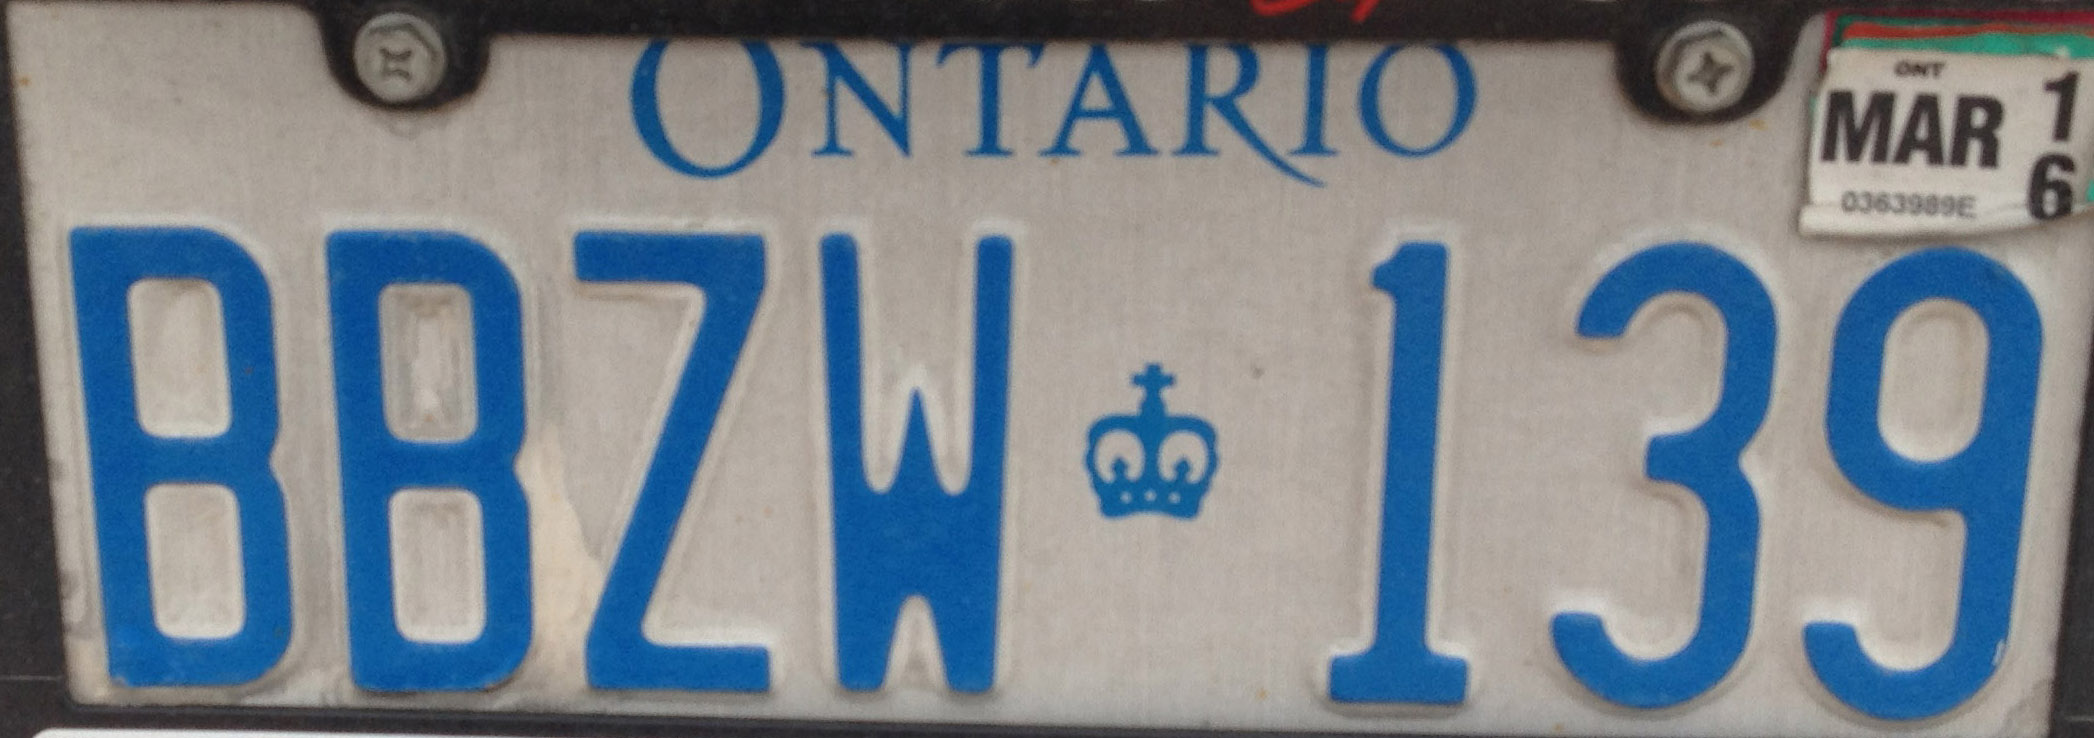 Arithmetic of Licence Plates | REJINCES